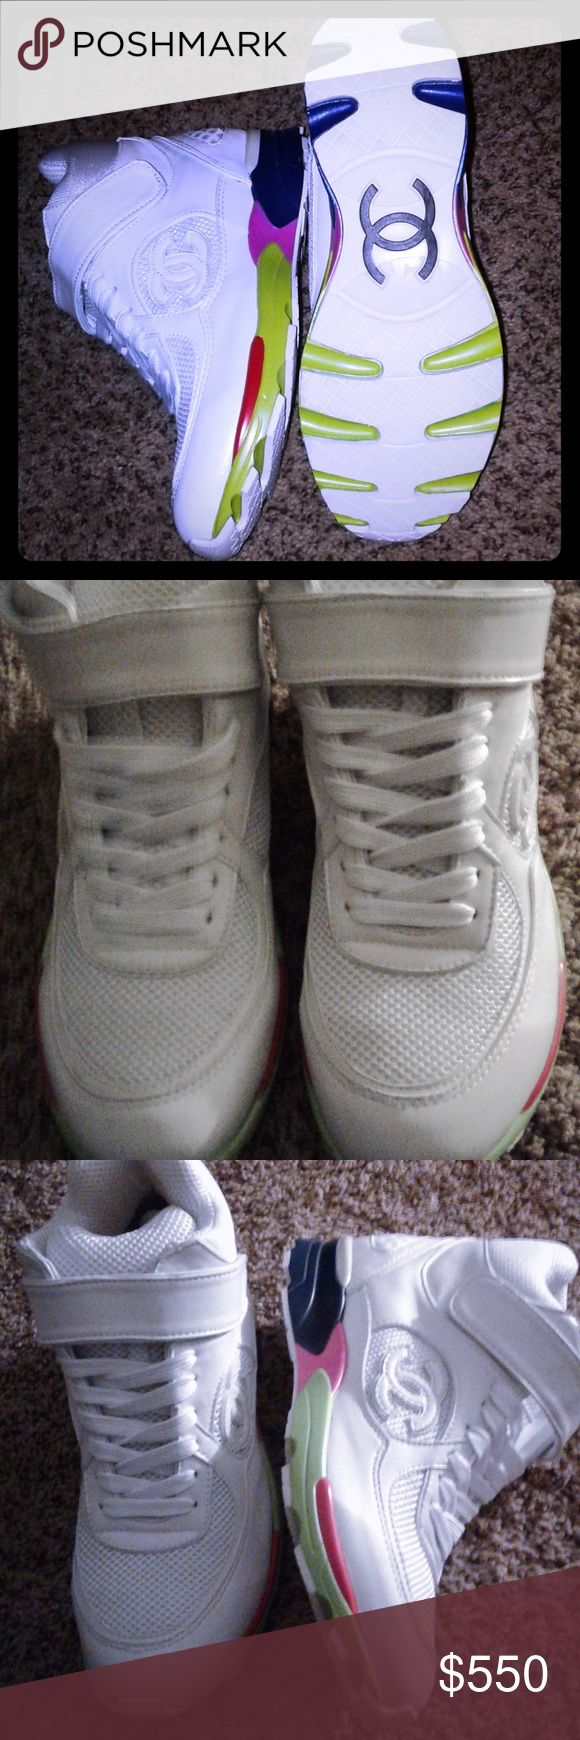 Chanel White tennis shoes. Size: 38(8). New Chanel Tennis Shoes. White. New, don't have a box. Last one. CHANEL Shoes Sneakers